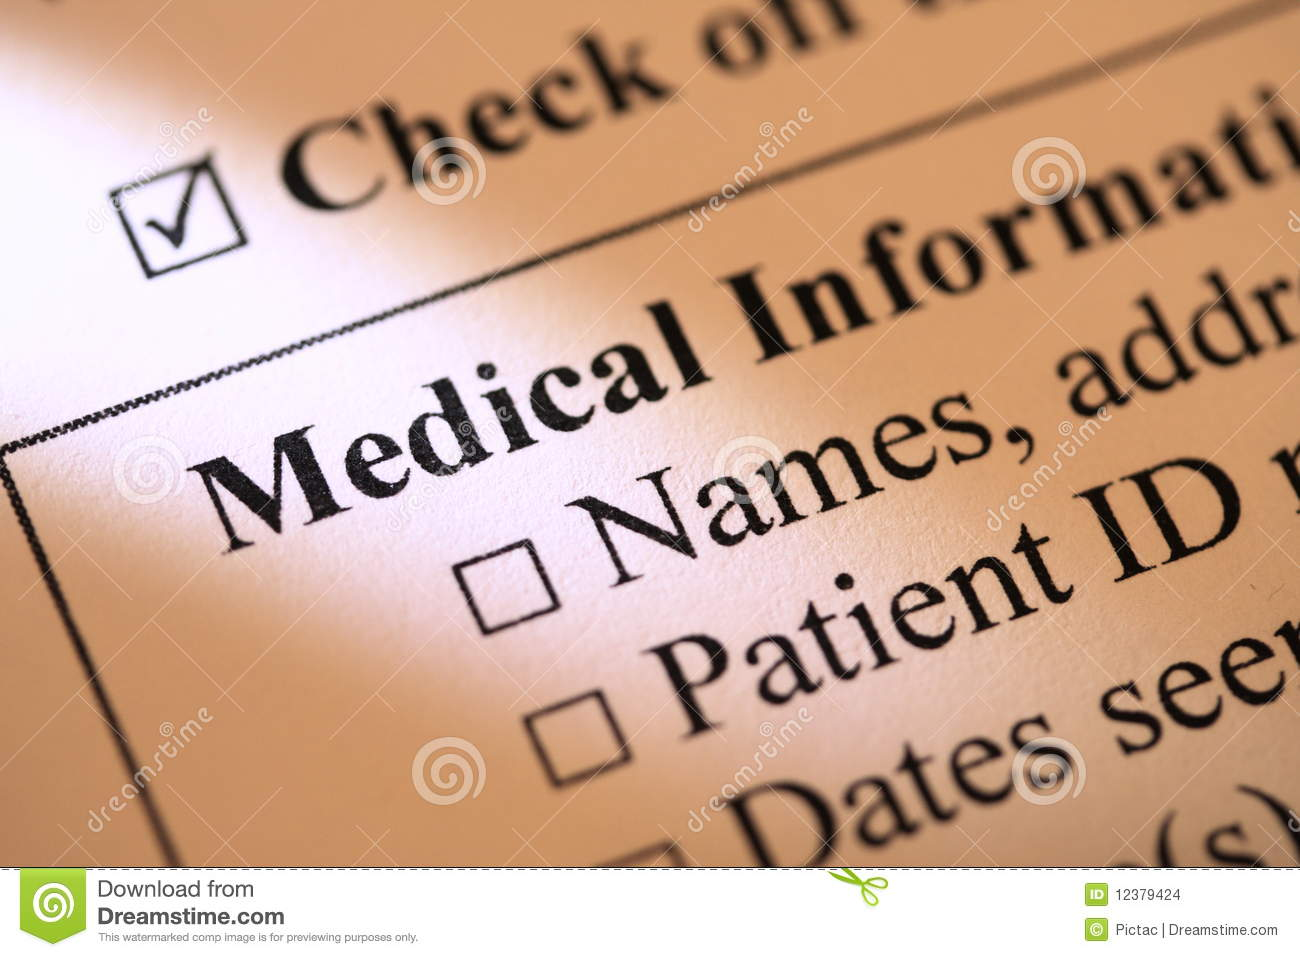 medical information form stock images - image: 12379424, Skeleton